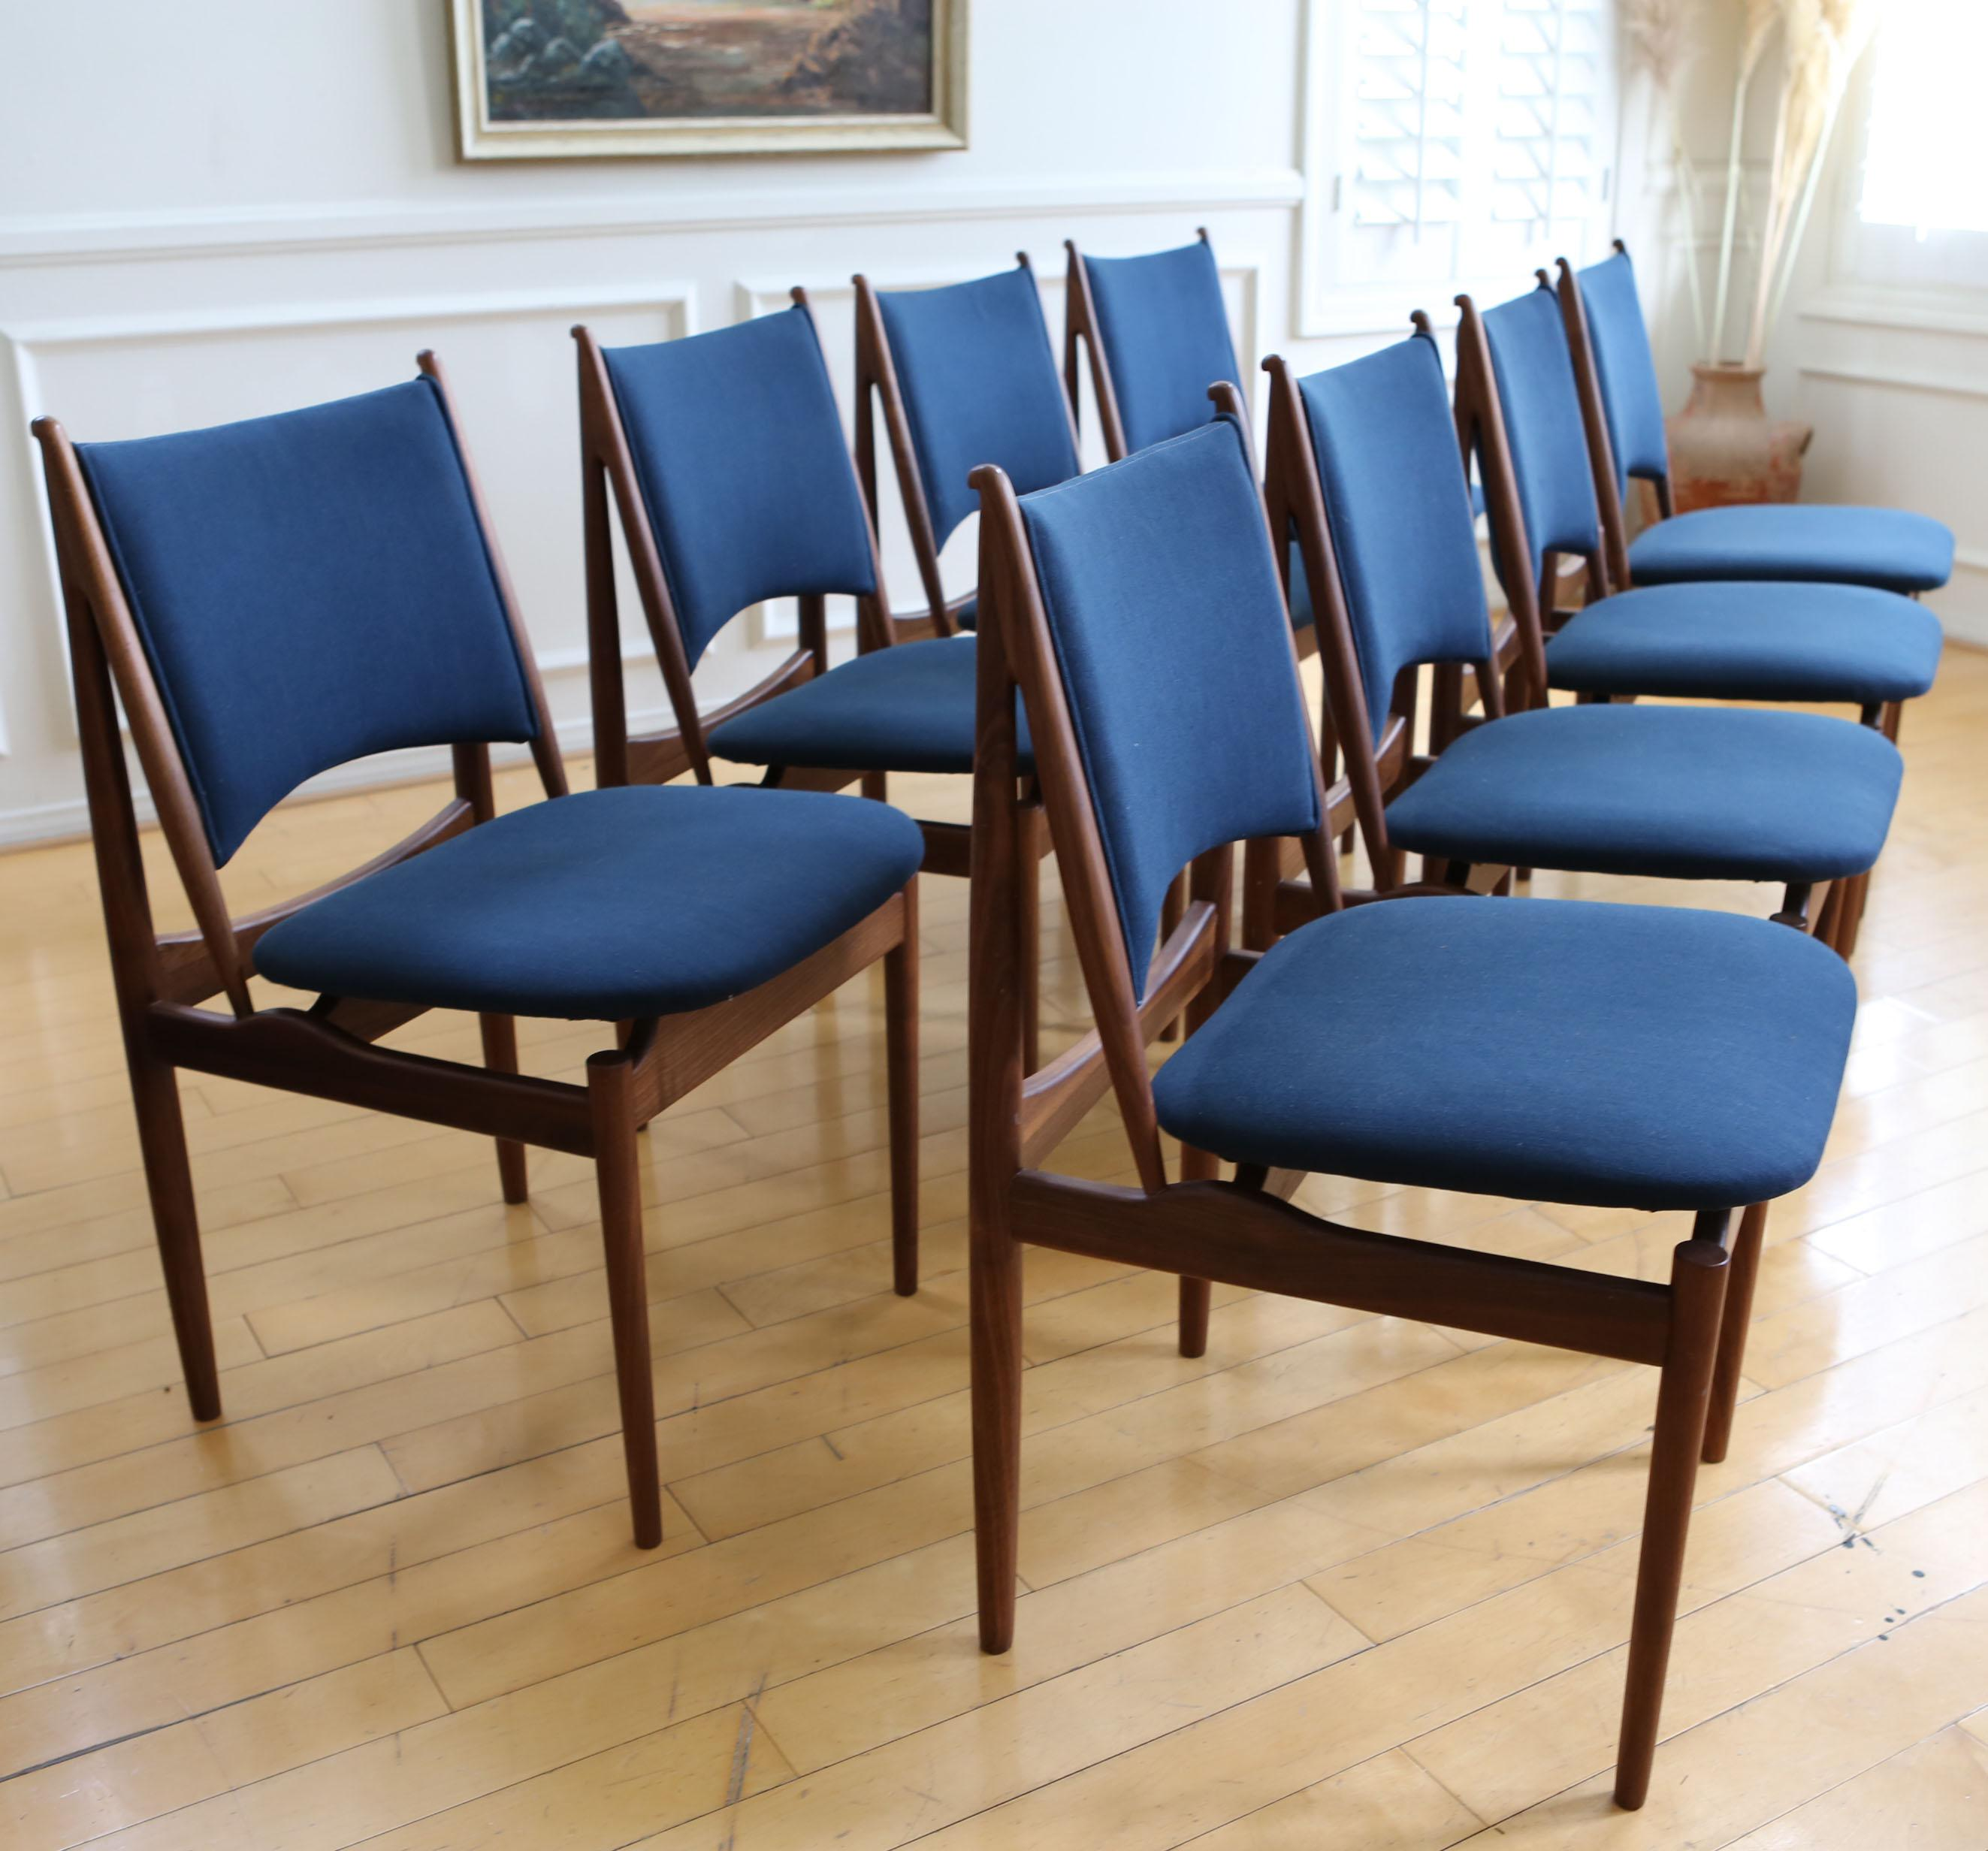 Mid Century Modern Teak Dining Chairs In Navy Blue   Set Of 8   Image 2